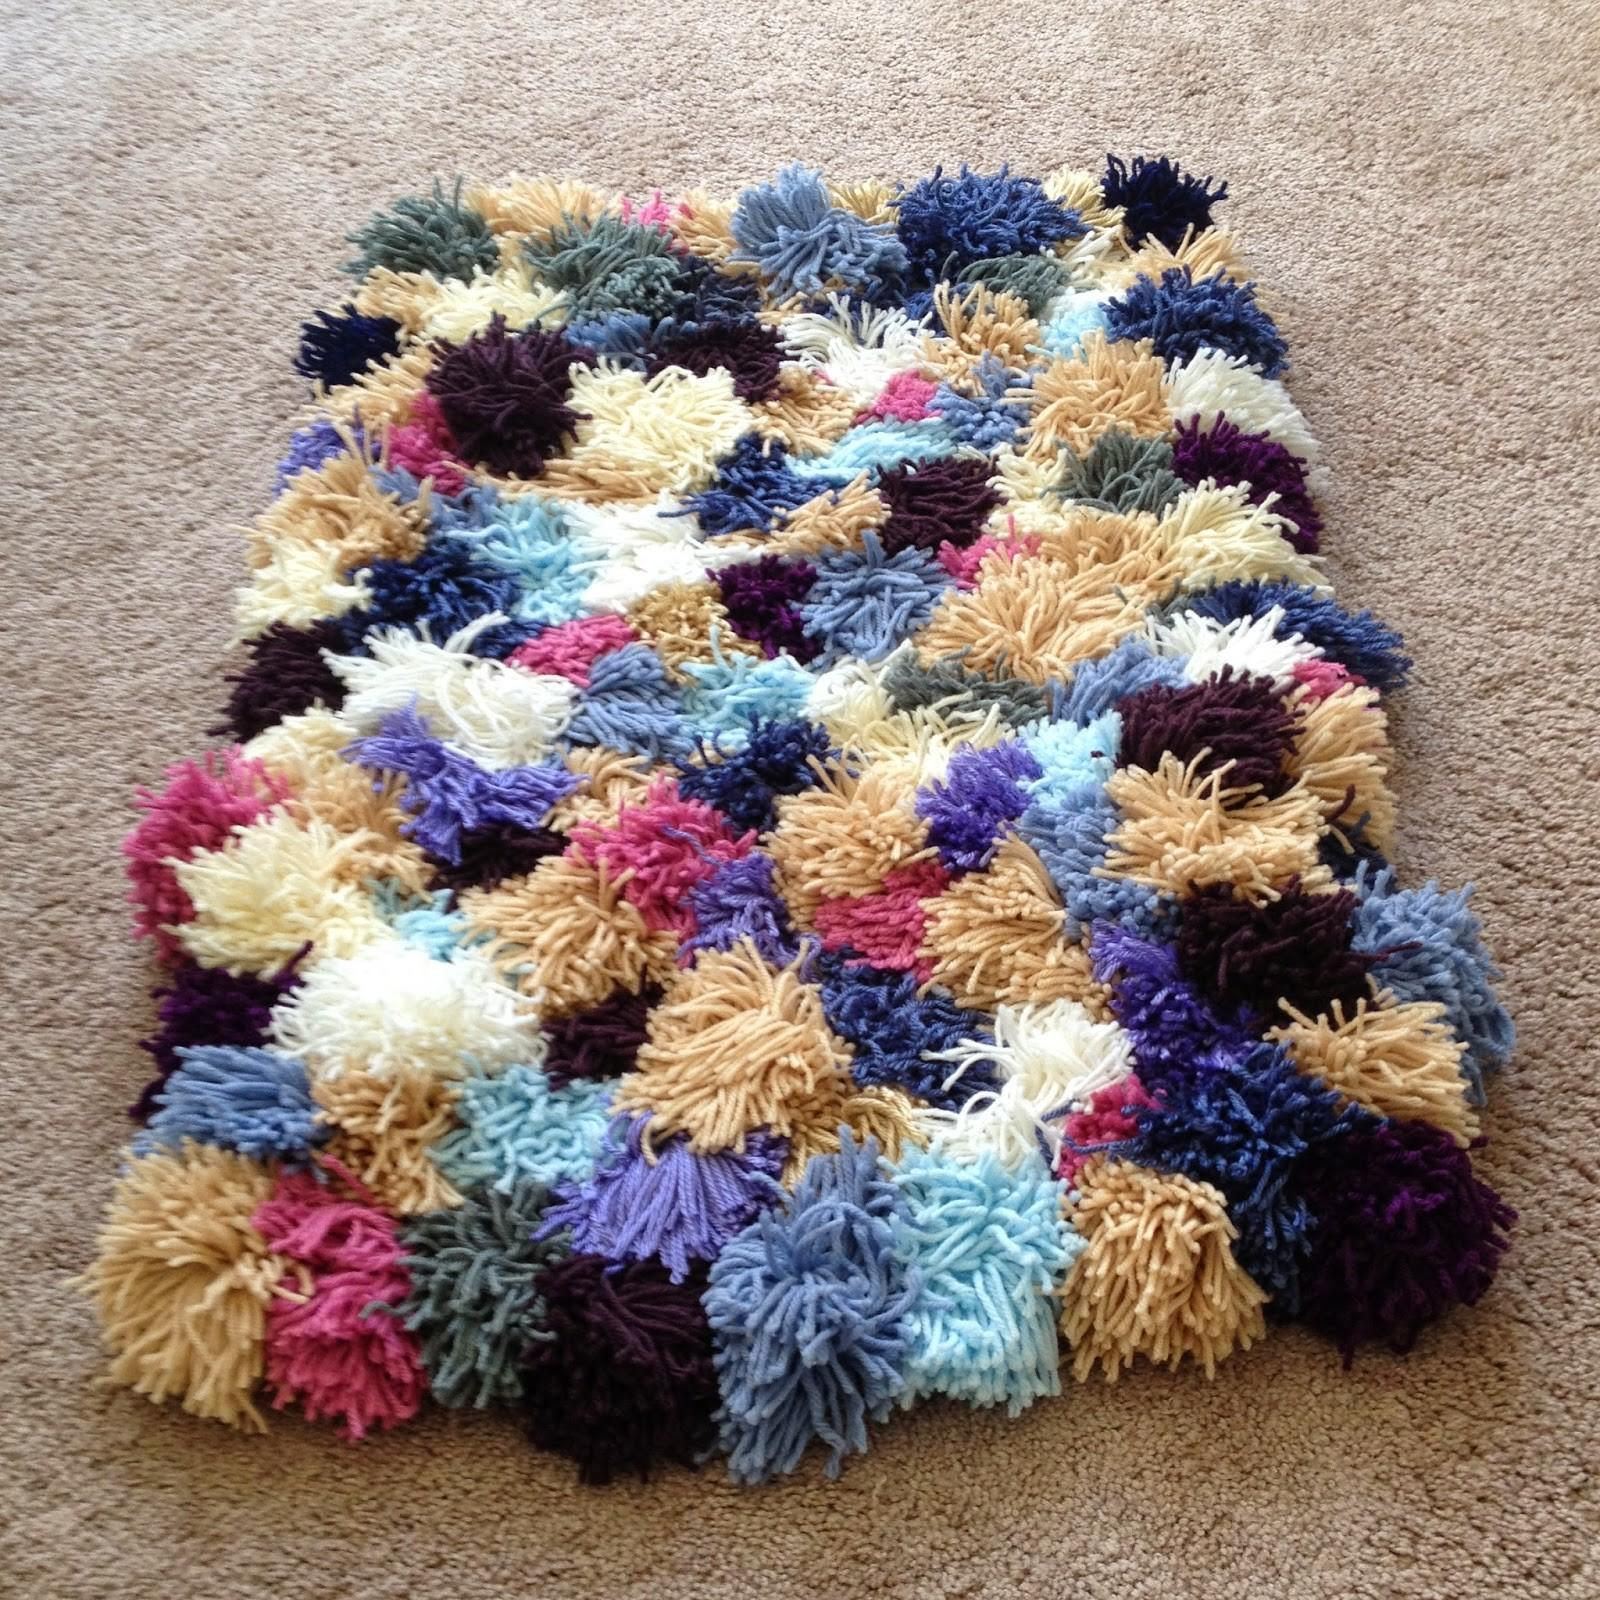 Crafty Novice Diy Yarn Rug